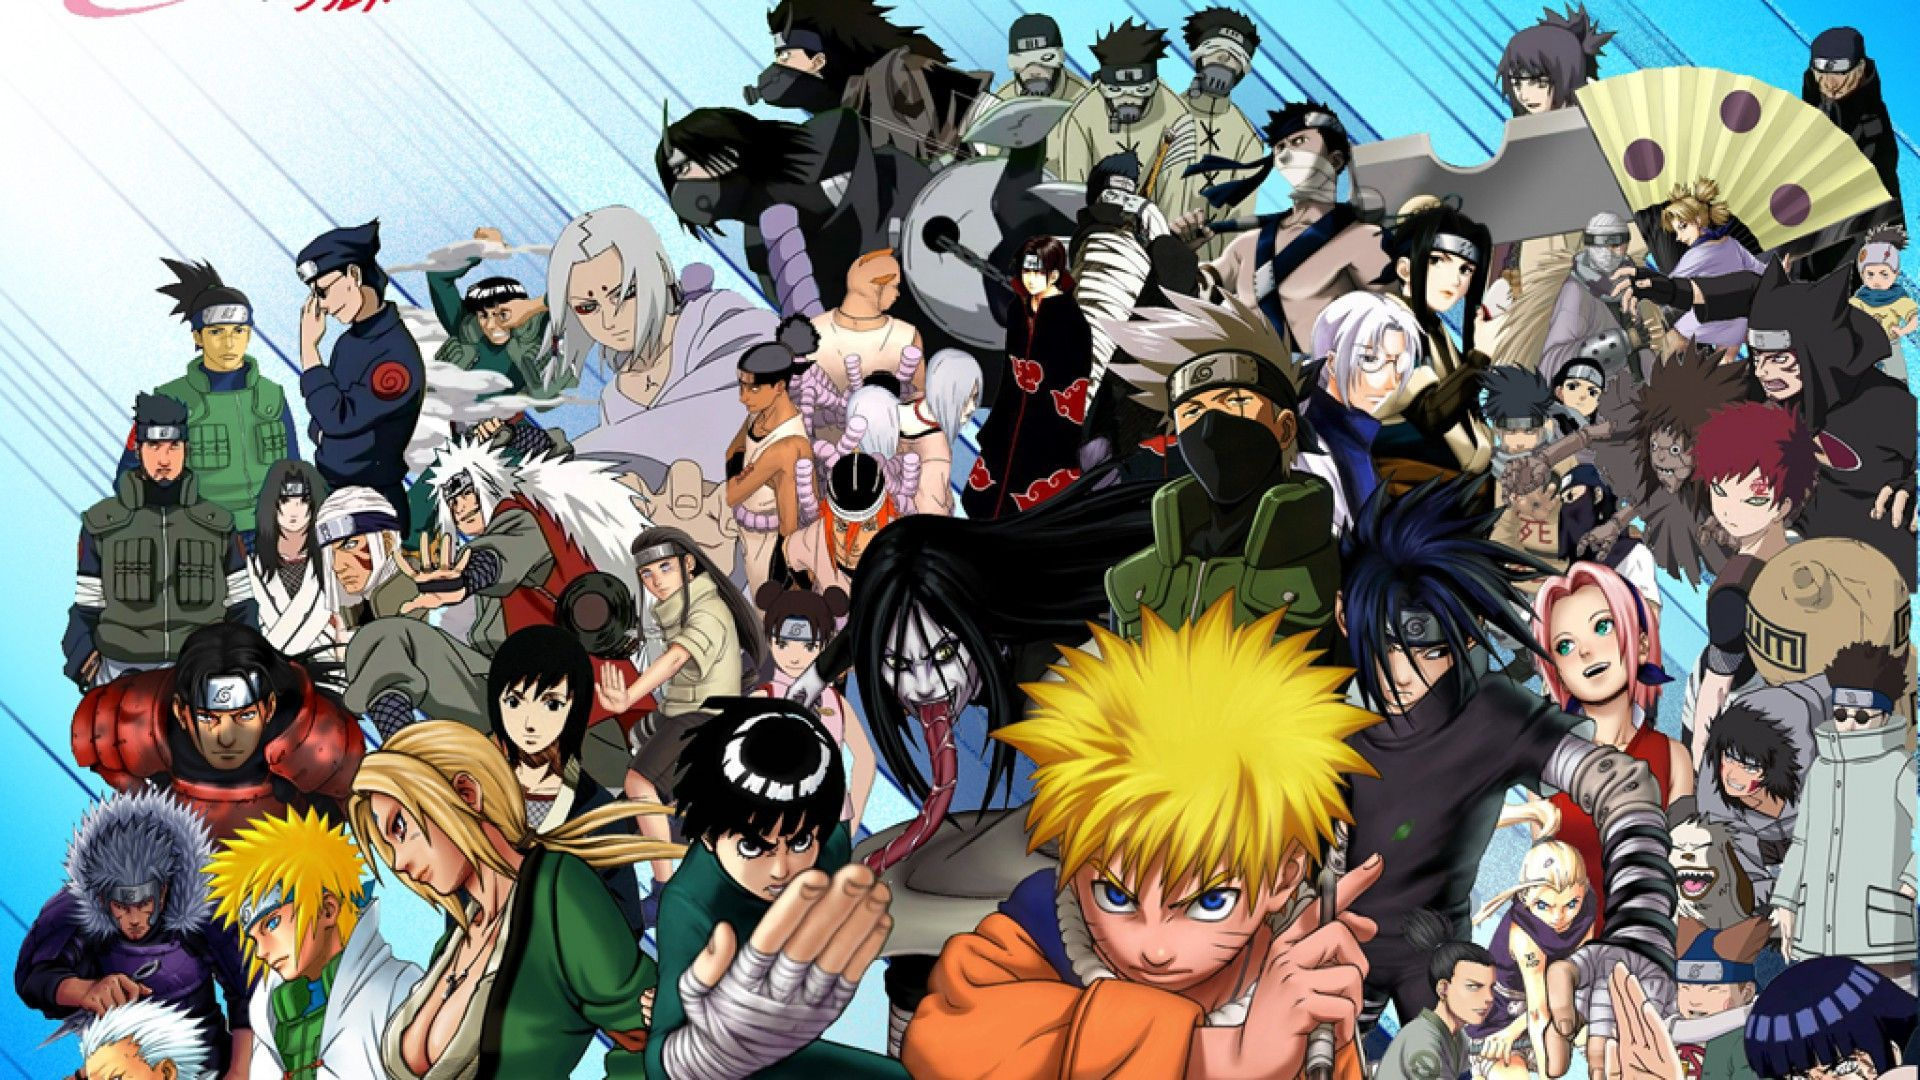 Naruto Group Wallpapers Top Free Naruto Group Backgrounds